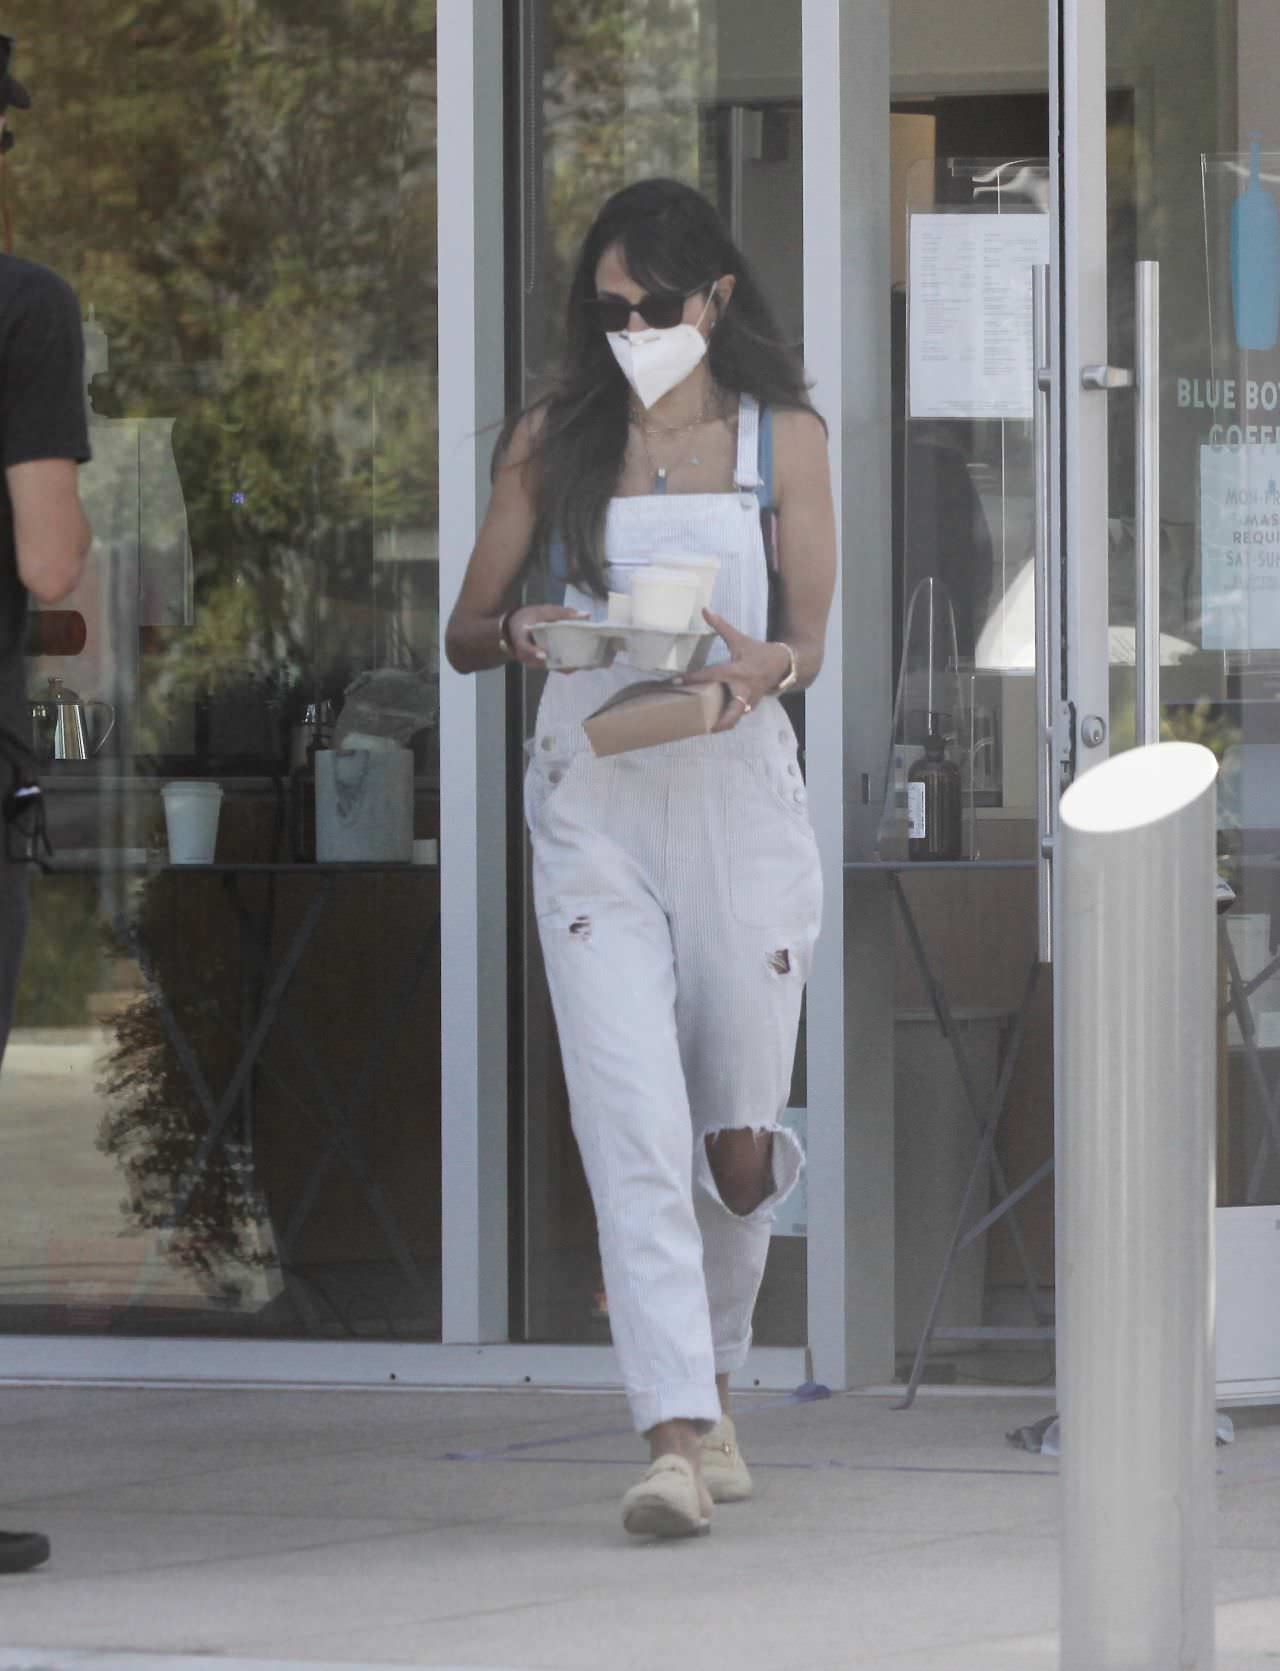 Jordana Brewster Does a Coffee Run in Distressed White Overalls